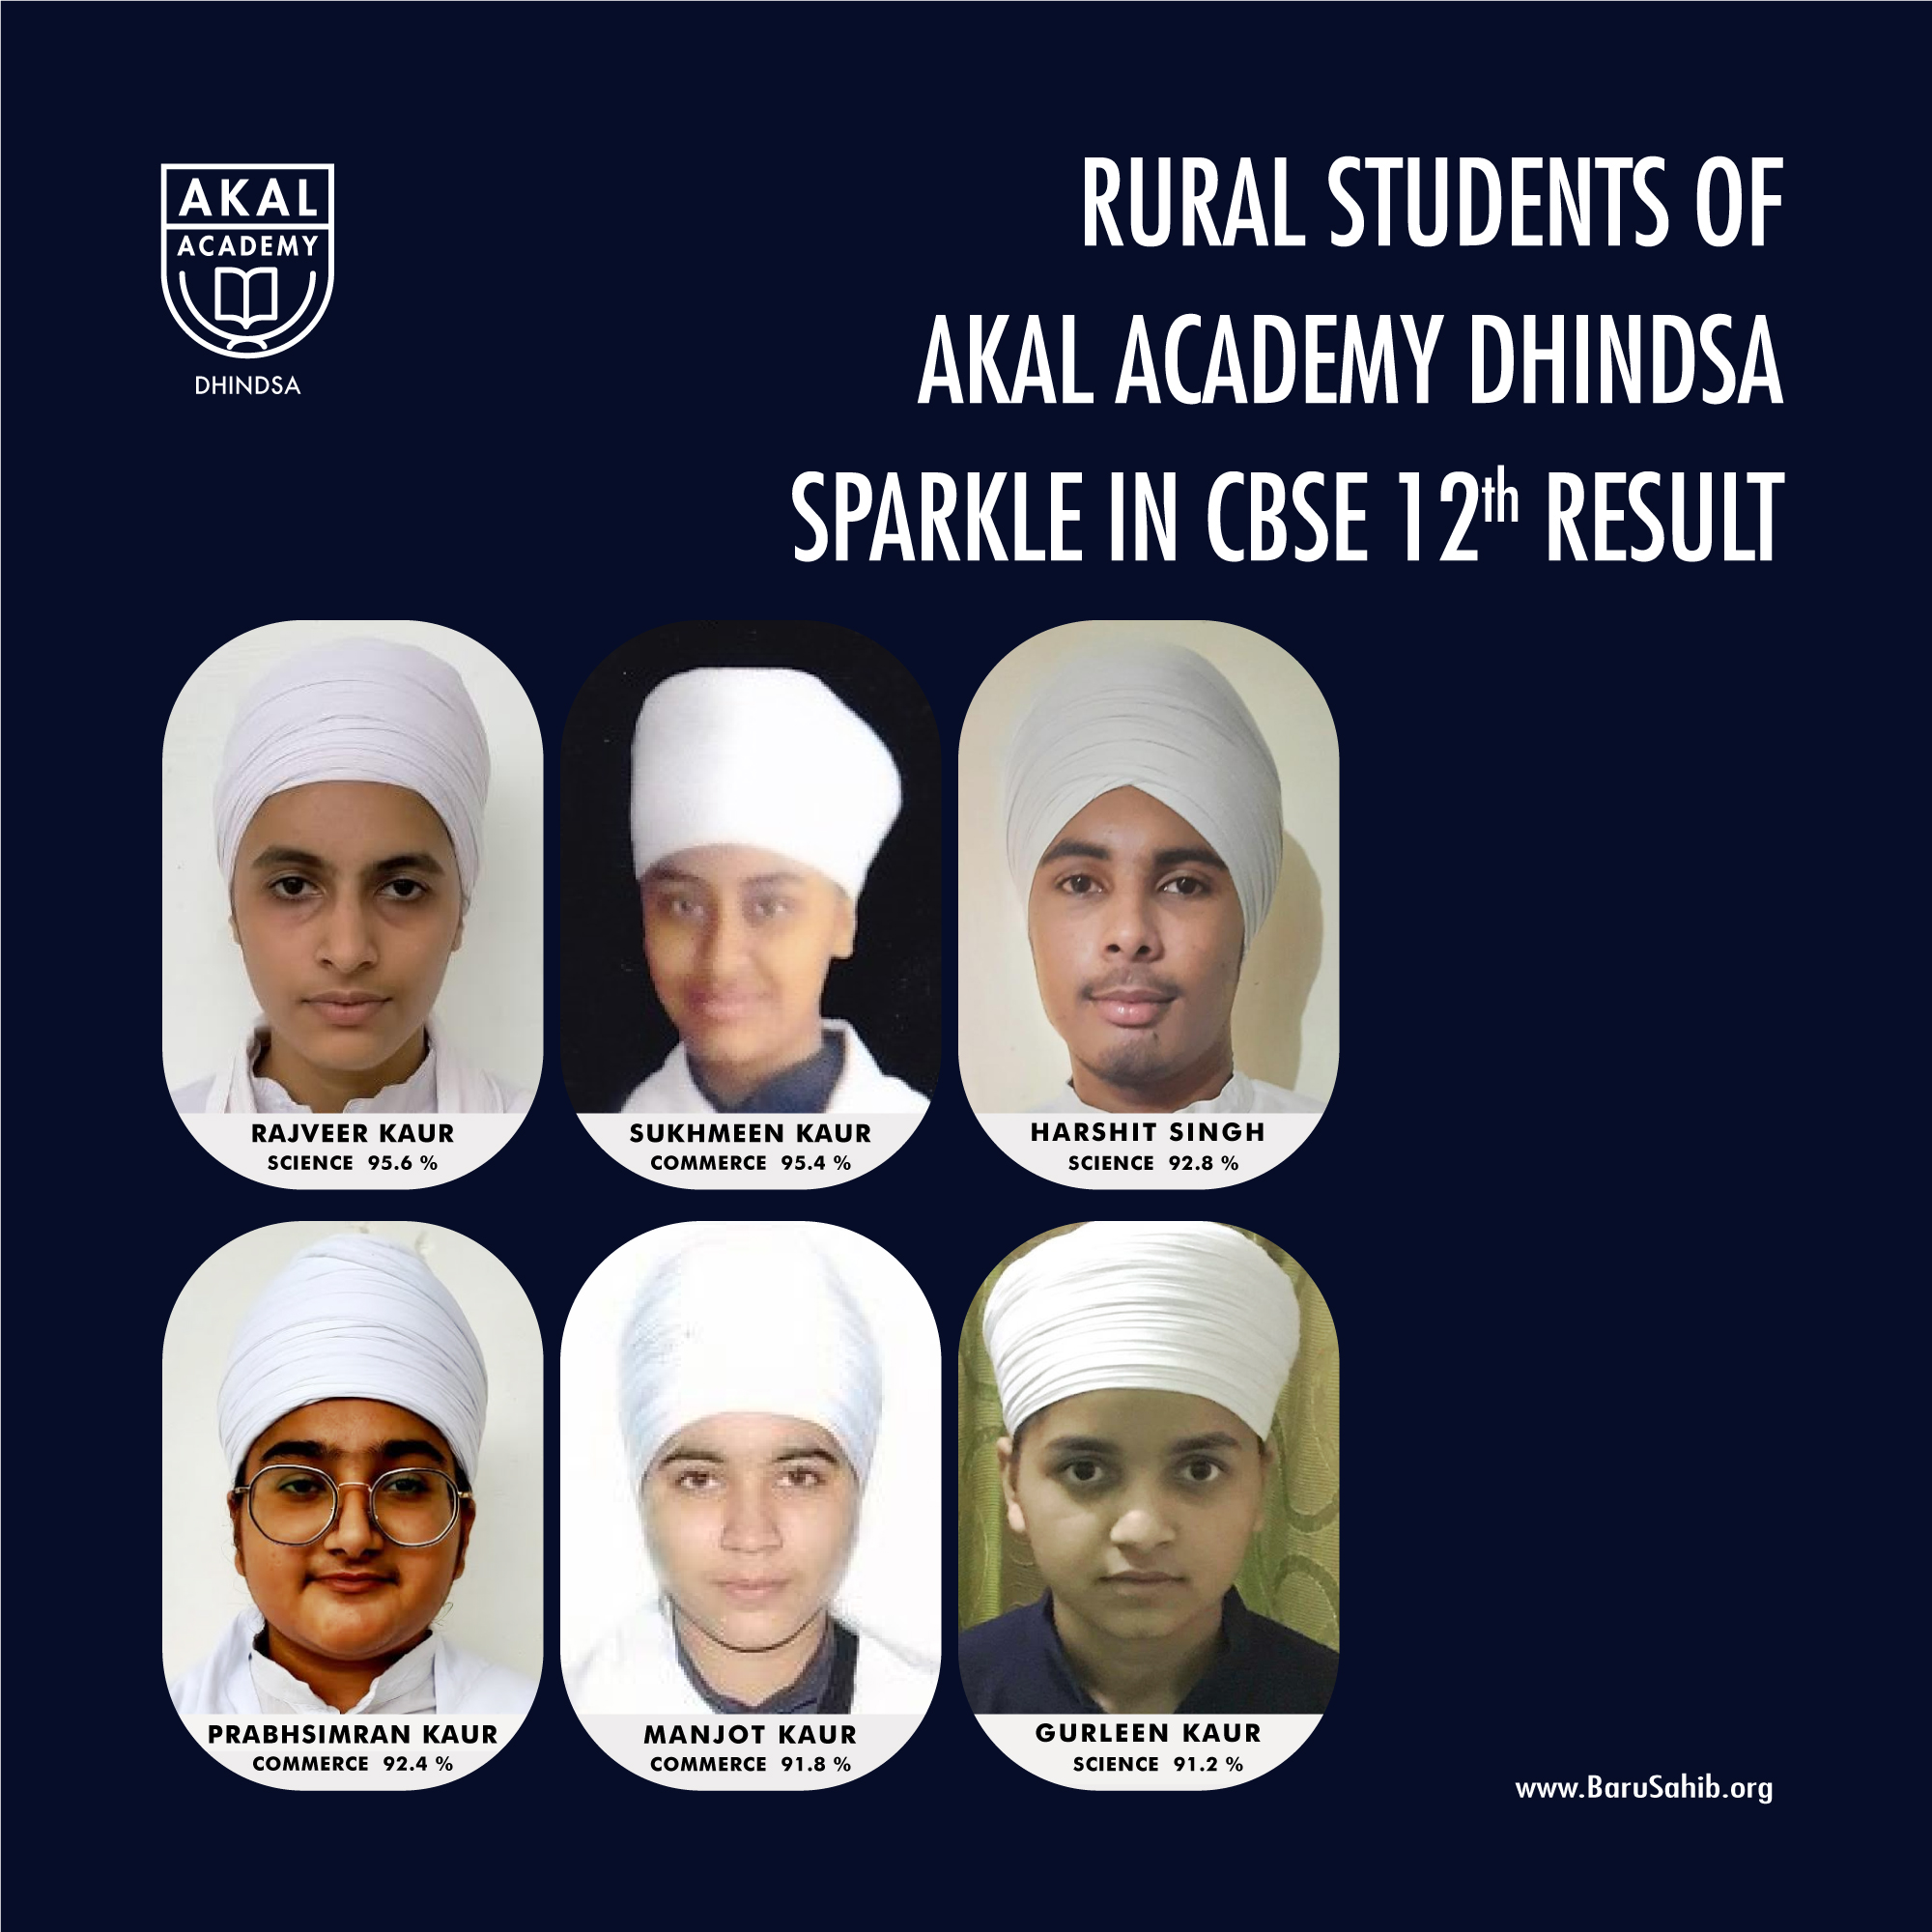 Rural Students of Akal Academy Dhindsa dazzle in CBSE 12th Result